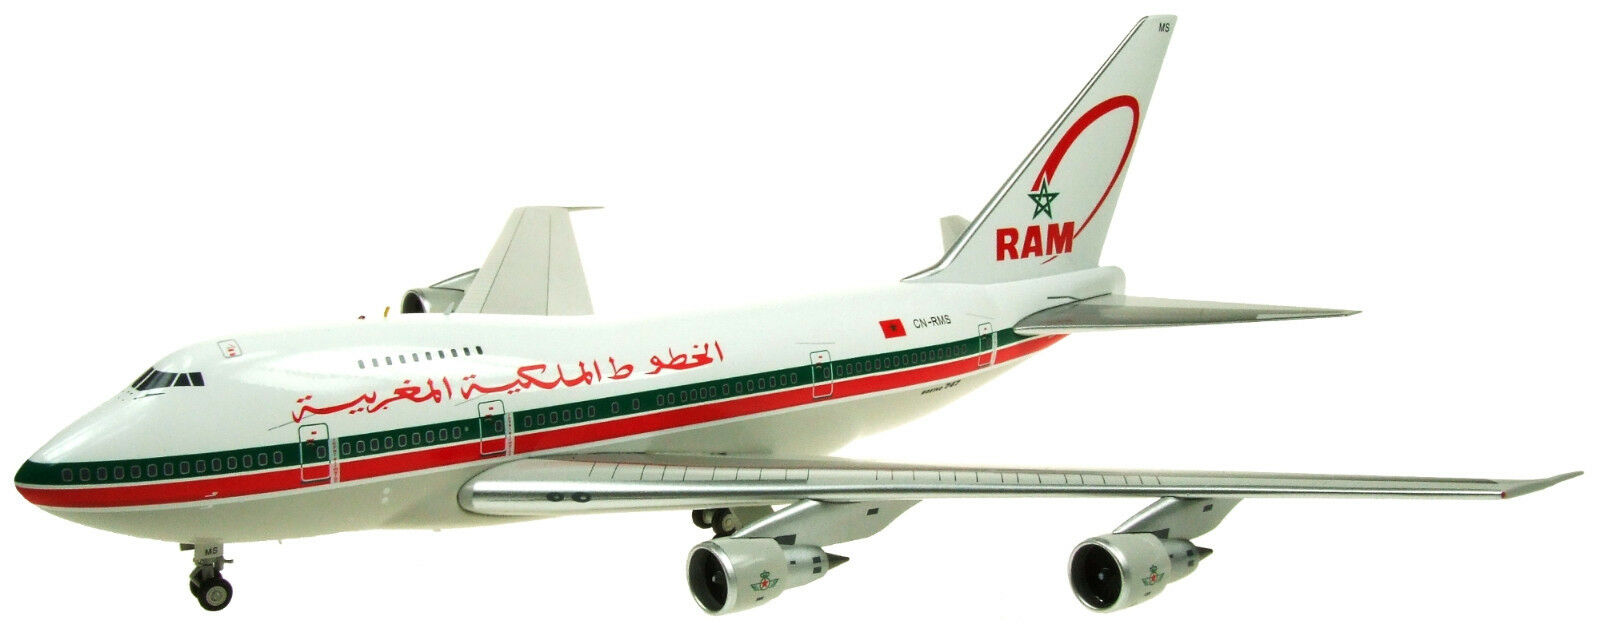 Inflight 200 If747sp0517 1 200 Royale Air Maroc RAM Boeing 747sp Cn-Rms W